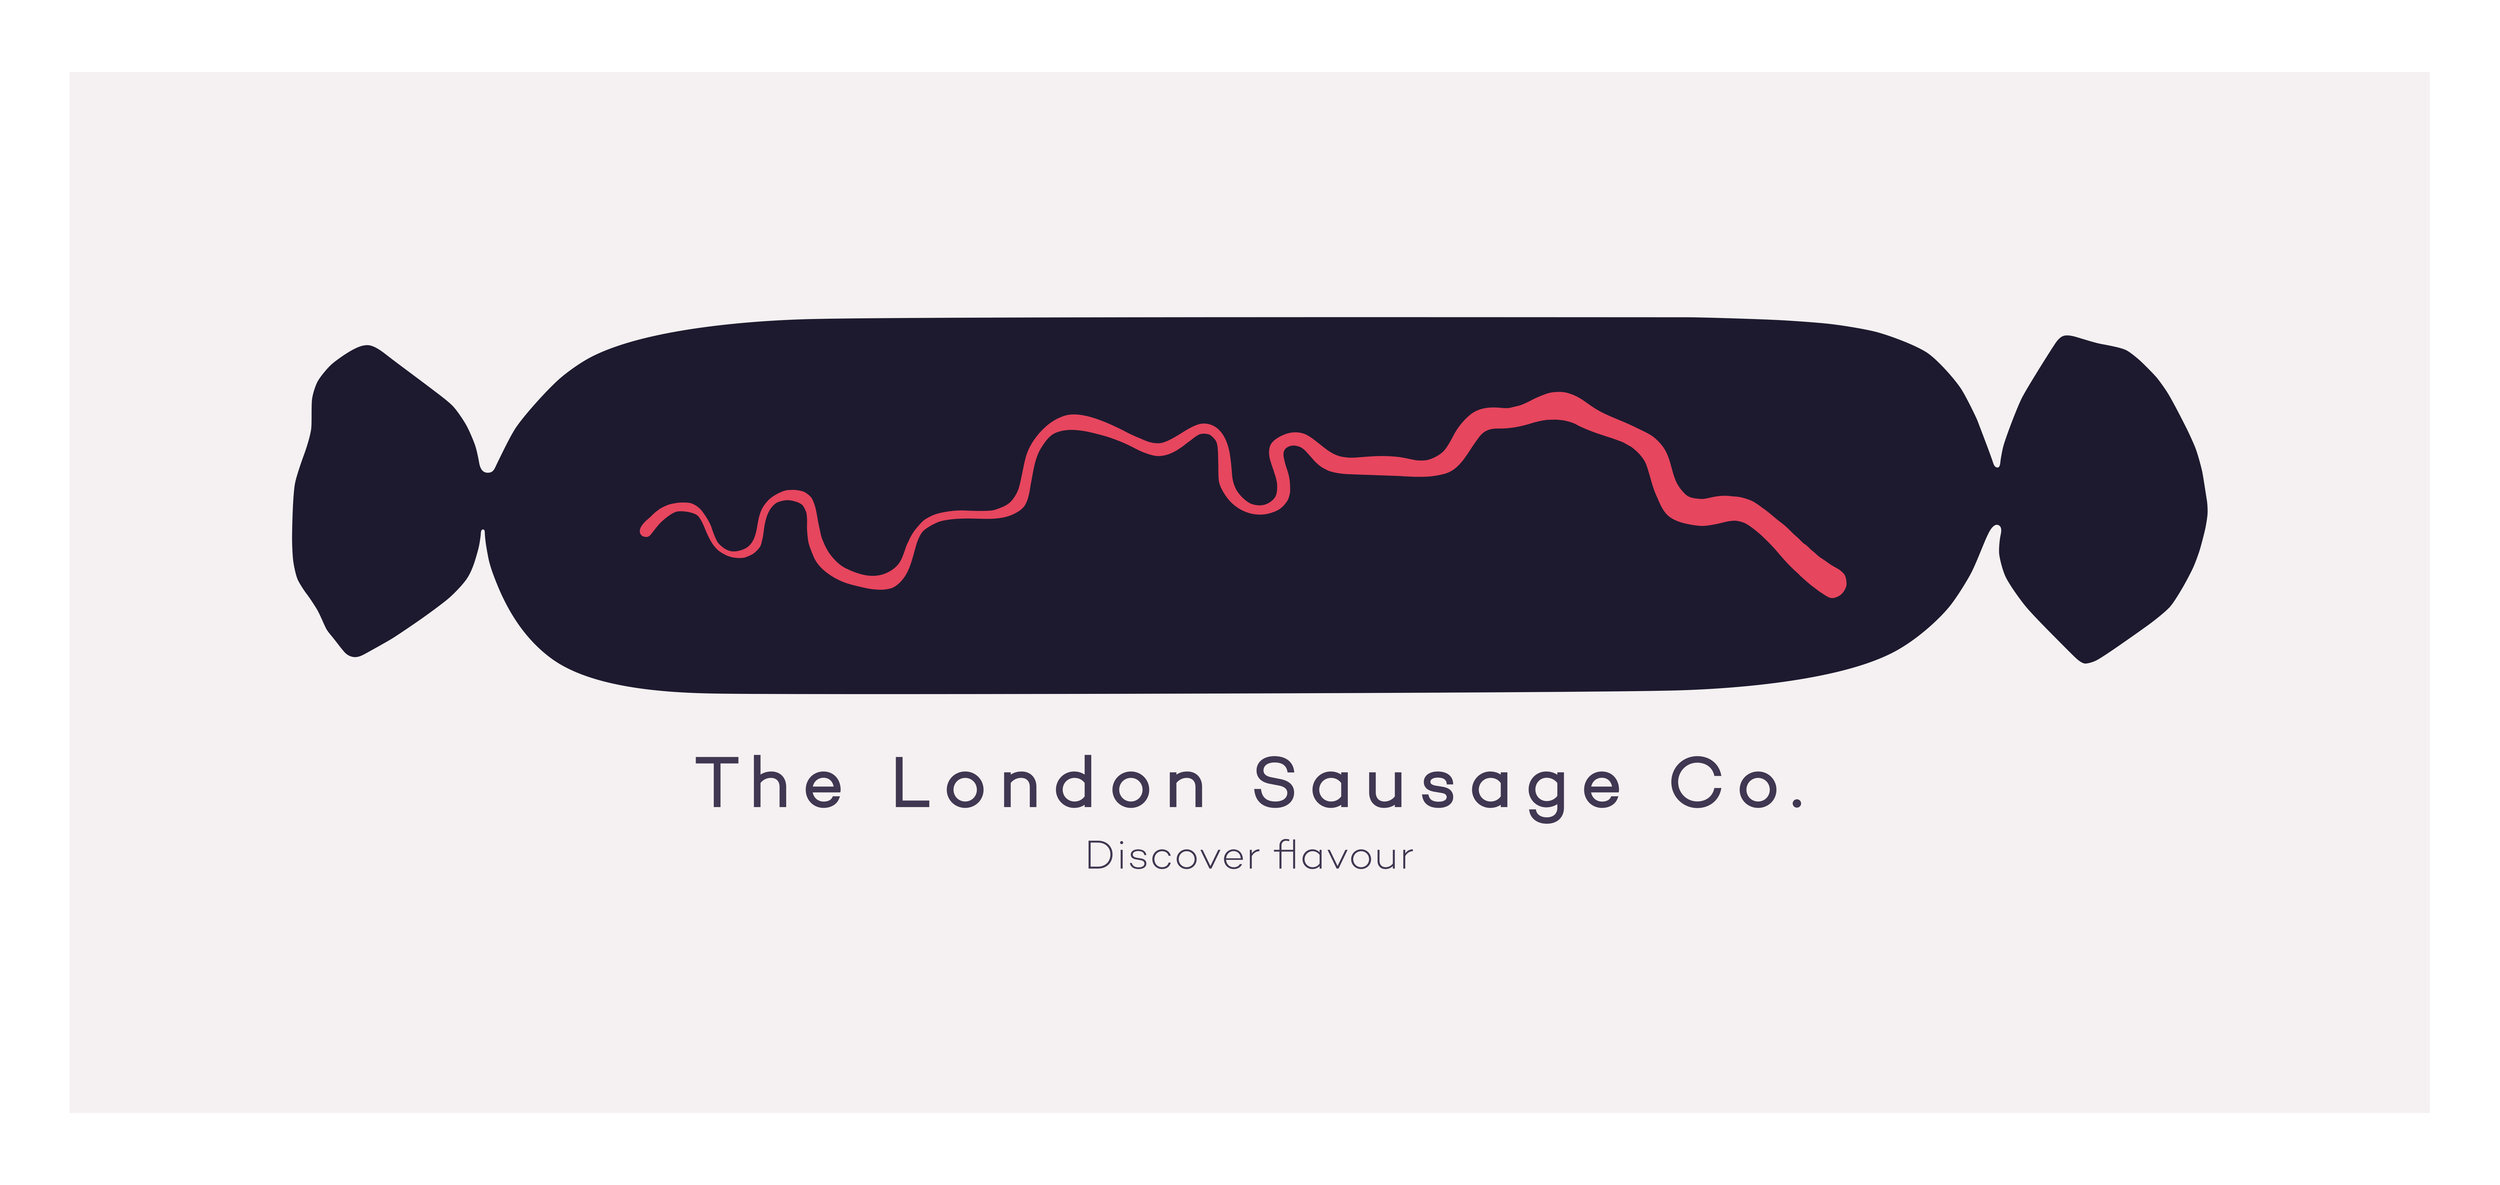 The London Sausage Company. Discover flavor. - Made with prime British pork from pigs born outdoors and reared in airy, straw-bedded barns. Our pigs are reared to produce high quality, succulent pork that is tender and full of flavor, exclusively for the London Sausage Company. We work with a long-established group of dedicated farms; selecting them for their high standards of animal welfare and a commitment to sustainable farming.